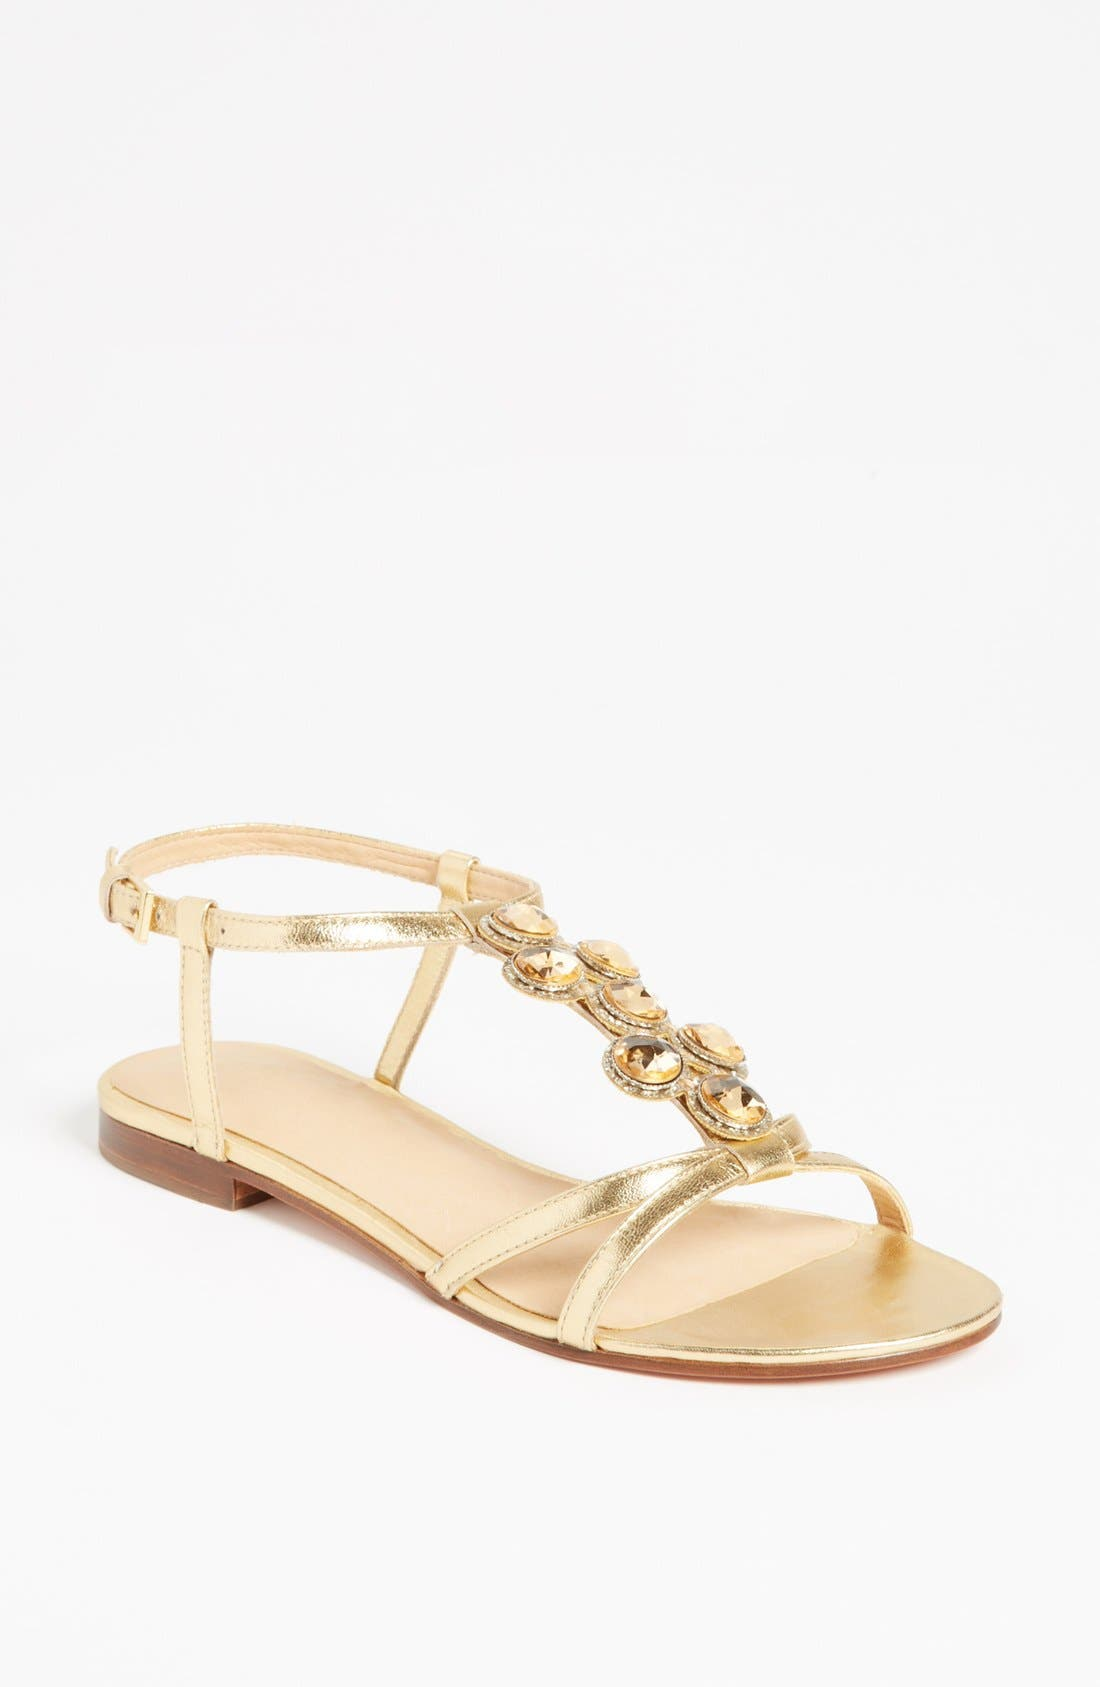 Main Image - kate spade new york 'stacey' sandal